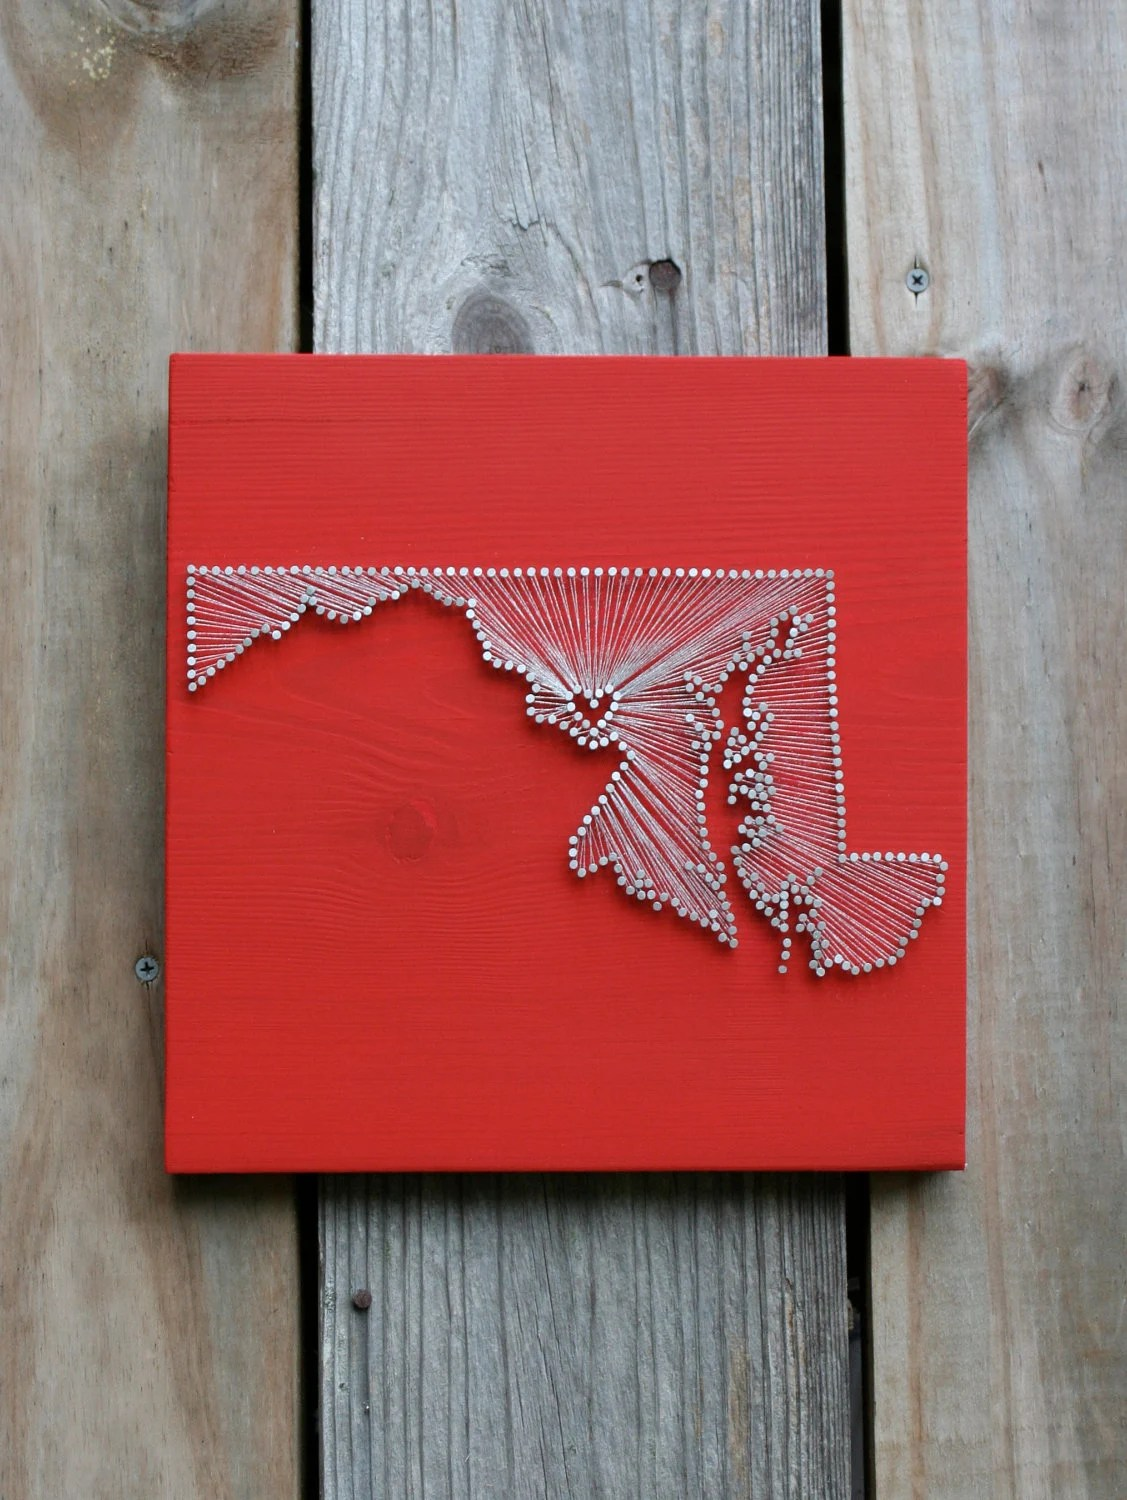 Maryland Love // Reclaimed Wood Nail and String Art Tribute to The Old Line State